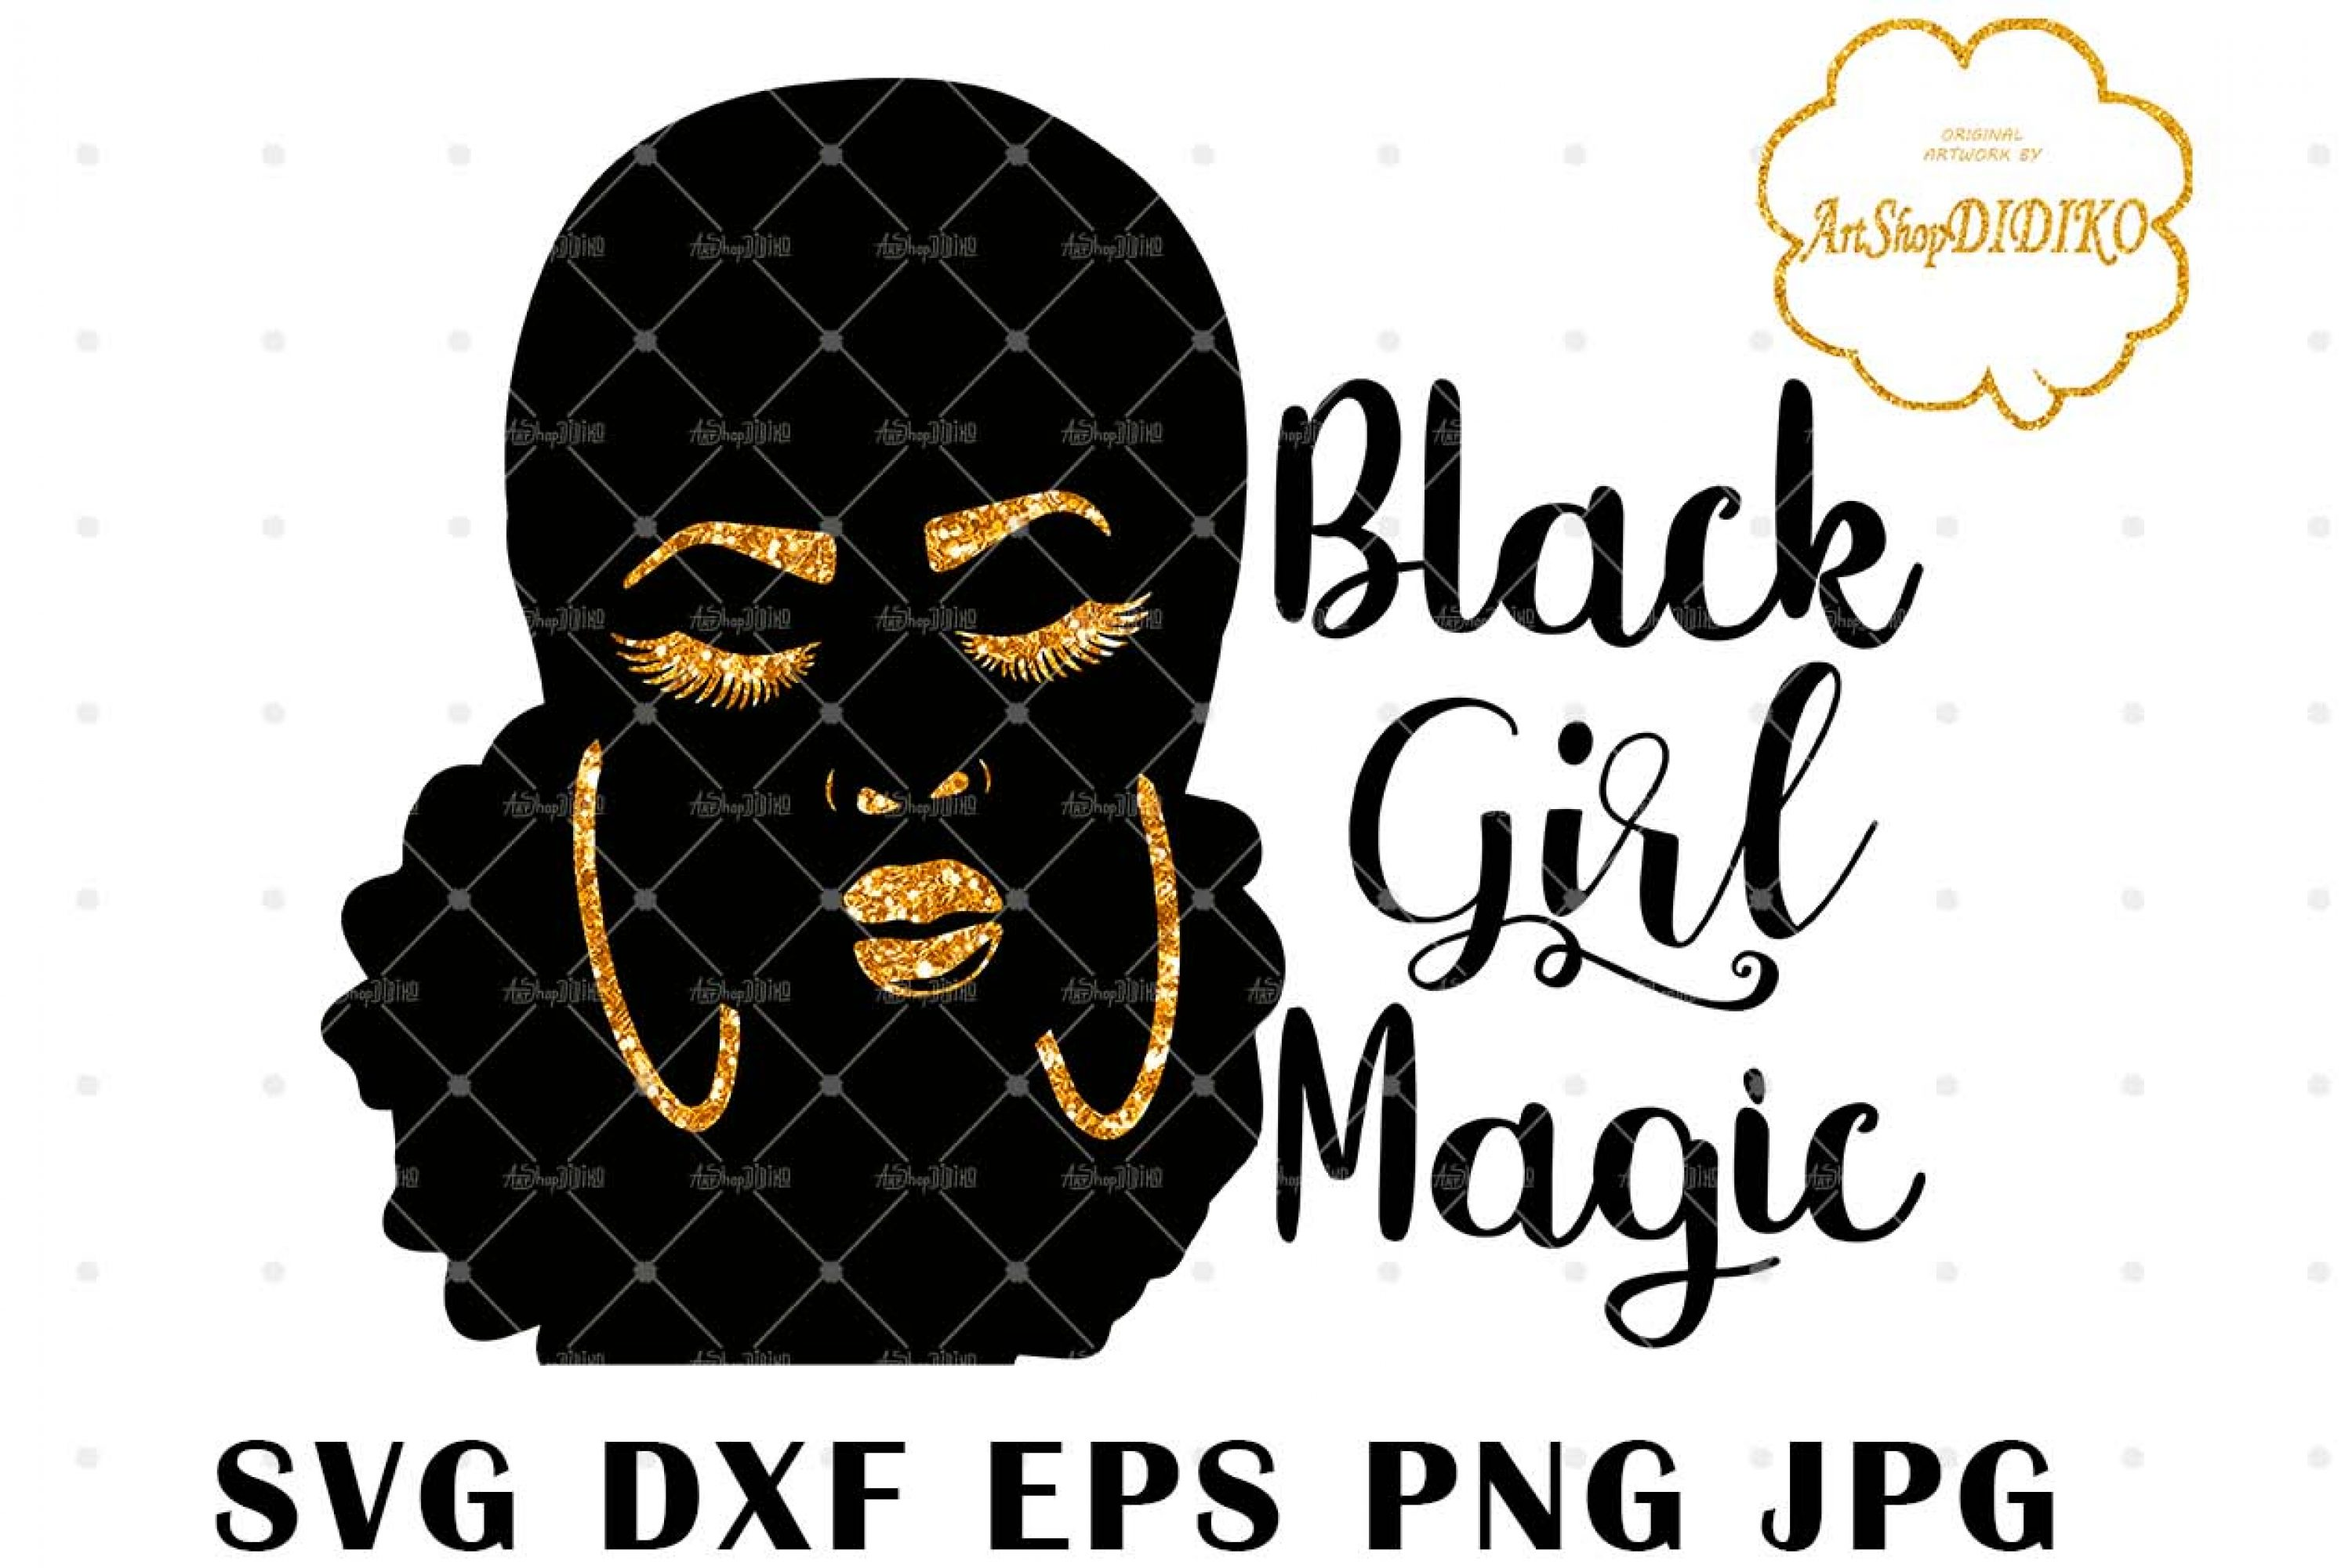 Black Girl Magic 2 SVG, African American SVG